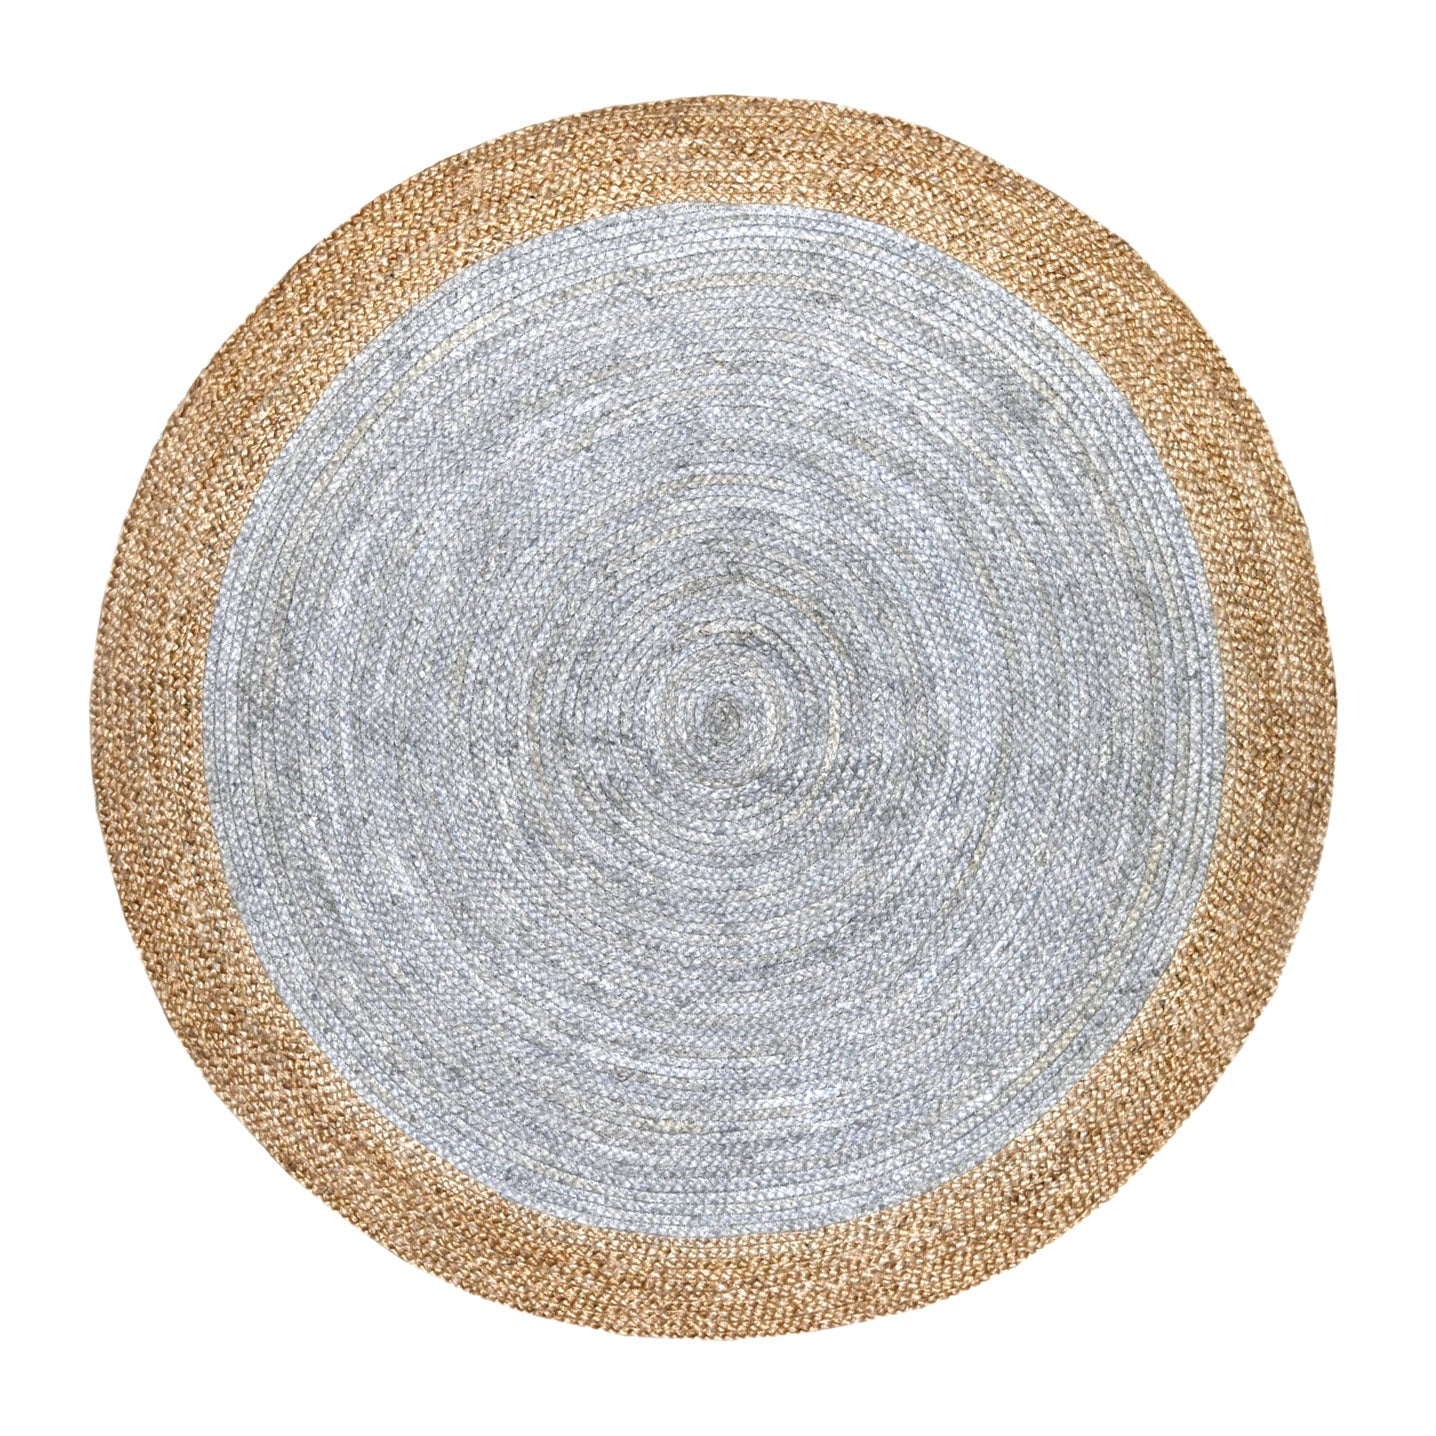 Oculus Indoor Outdoor Handwoven Round Jute Rug (Natural/Light Grey)